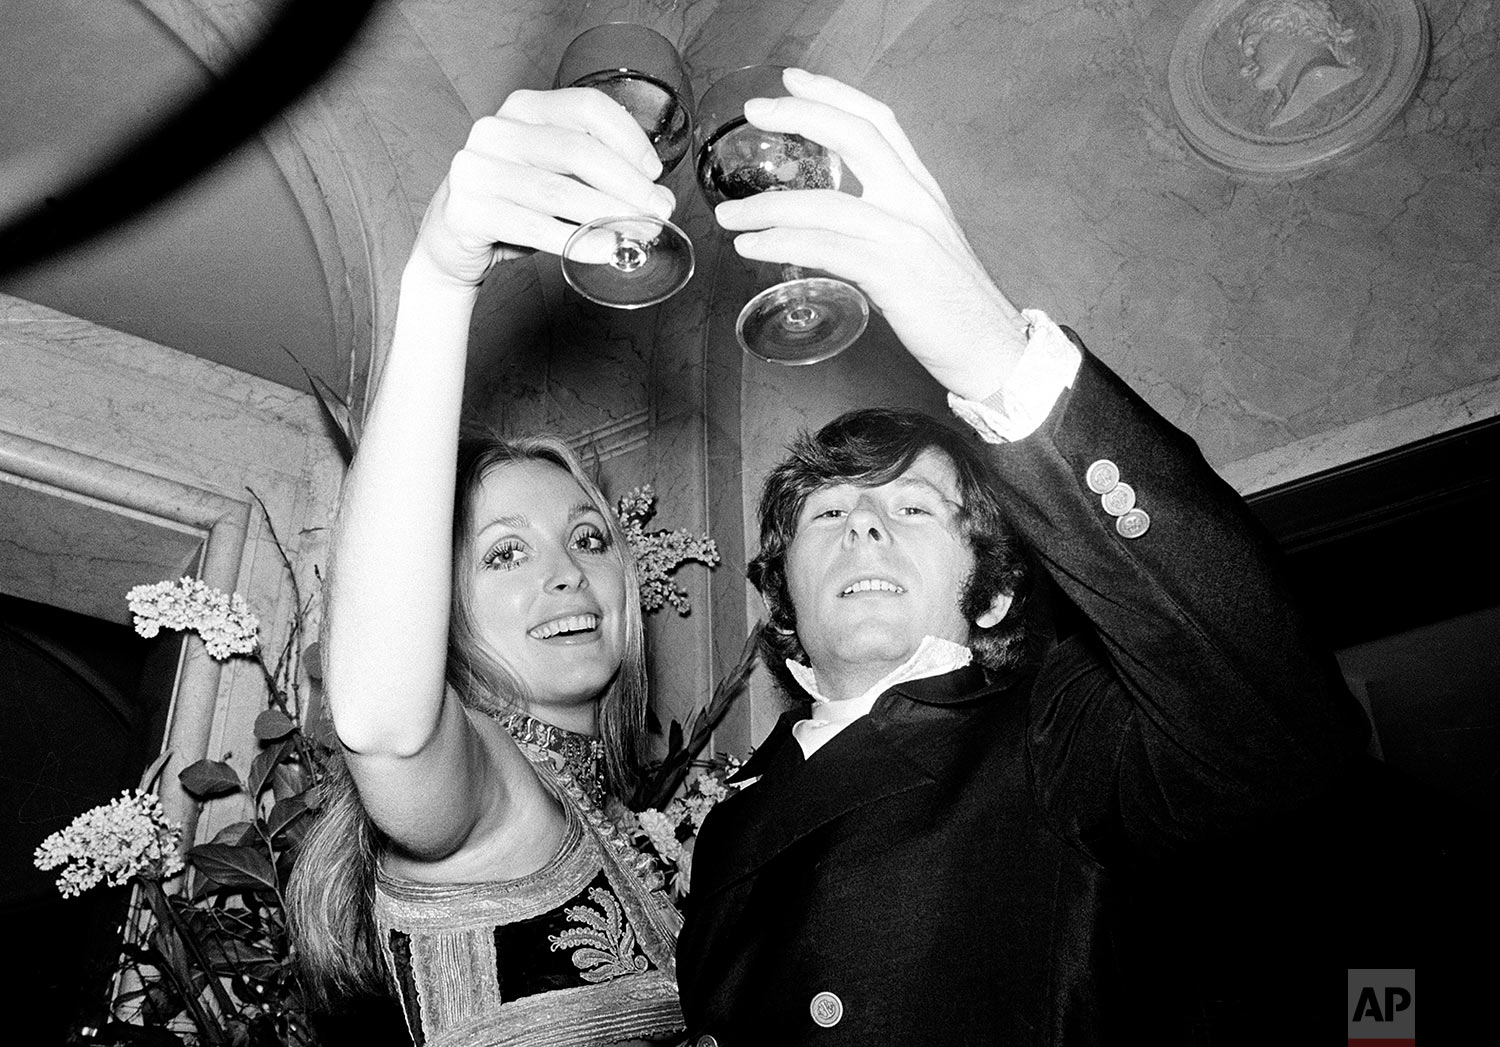 """Film director Roman Polanski and his wife, actress Sharon Tate, lift their glasses in a toast at the premiere of his film """"Rosemary's Baby"""" in London, England, Jan. 23, 1969. (AP Photo)"""